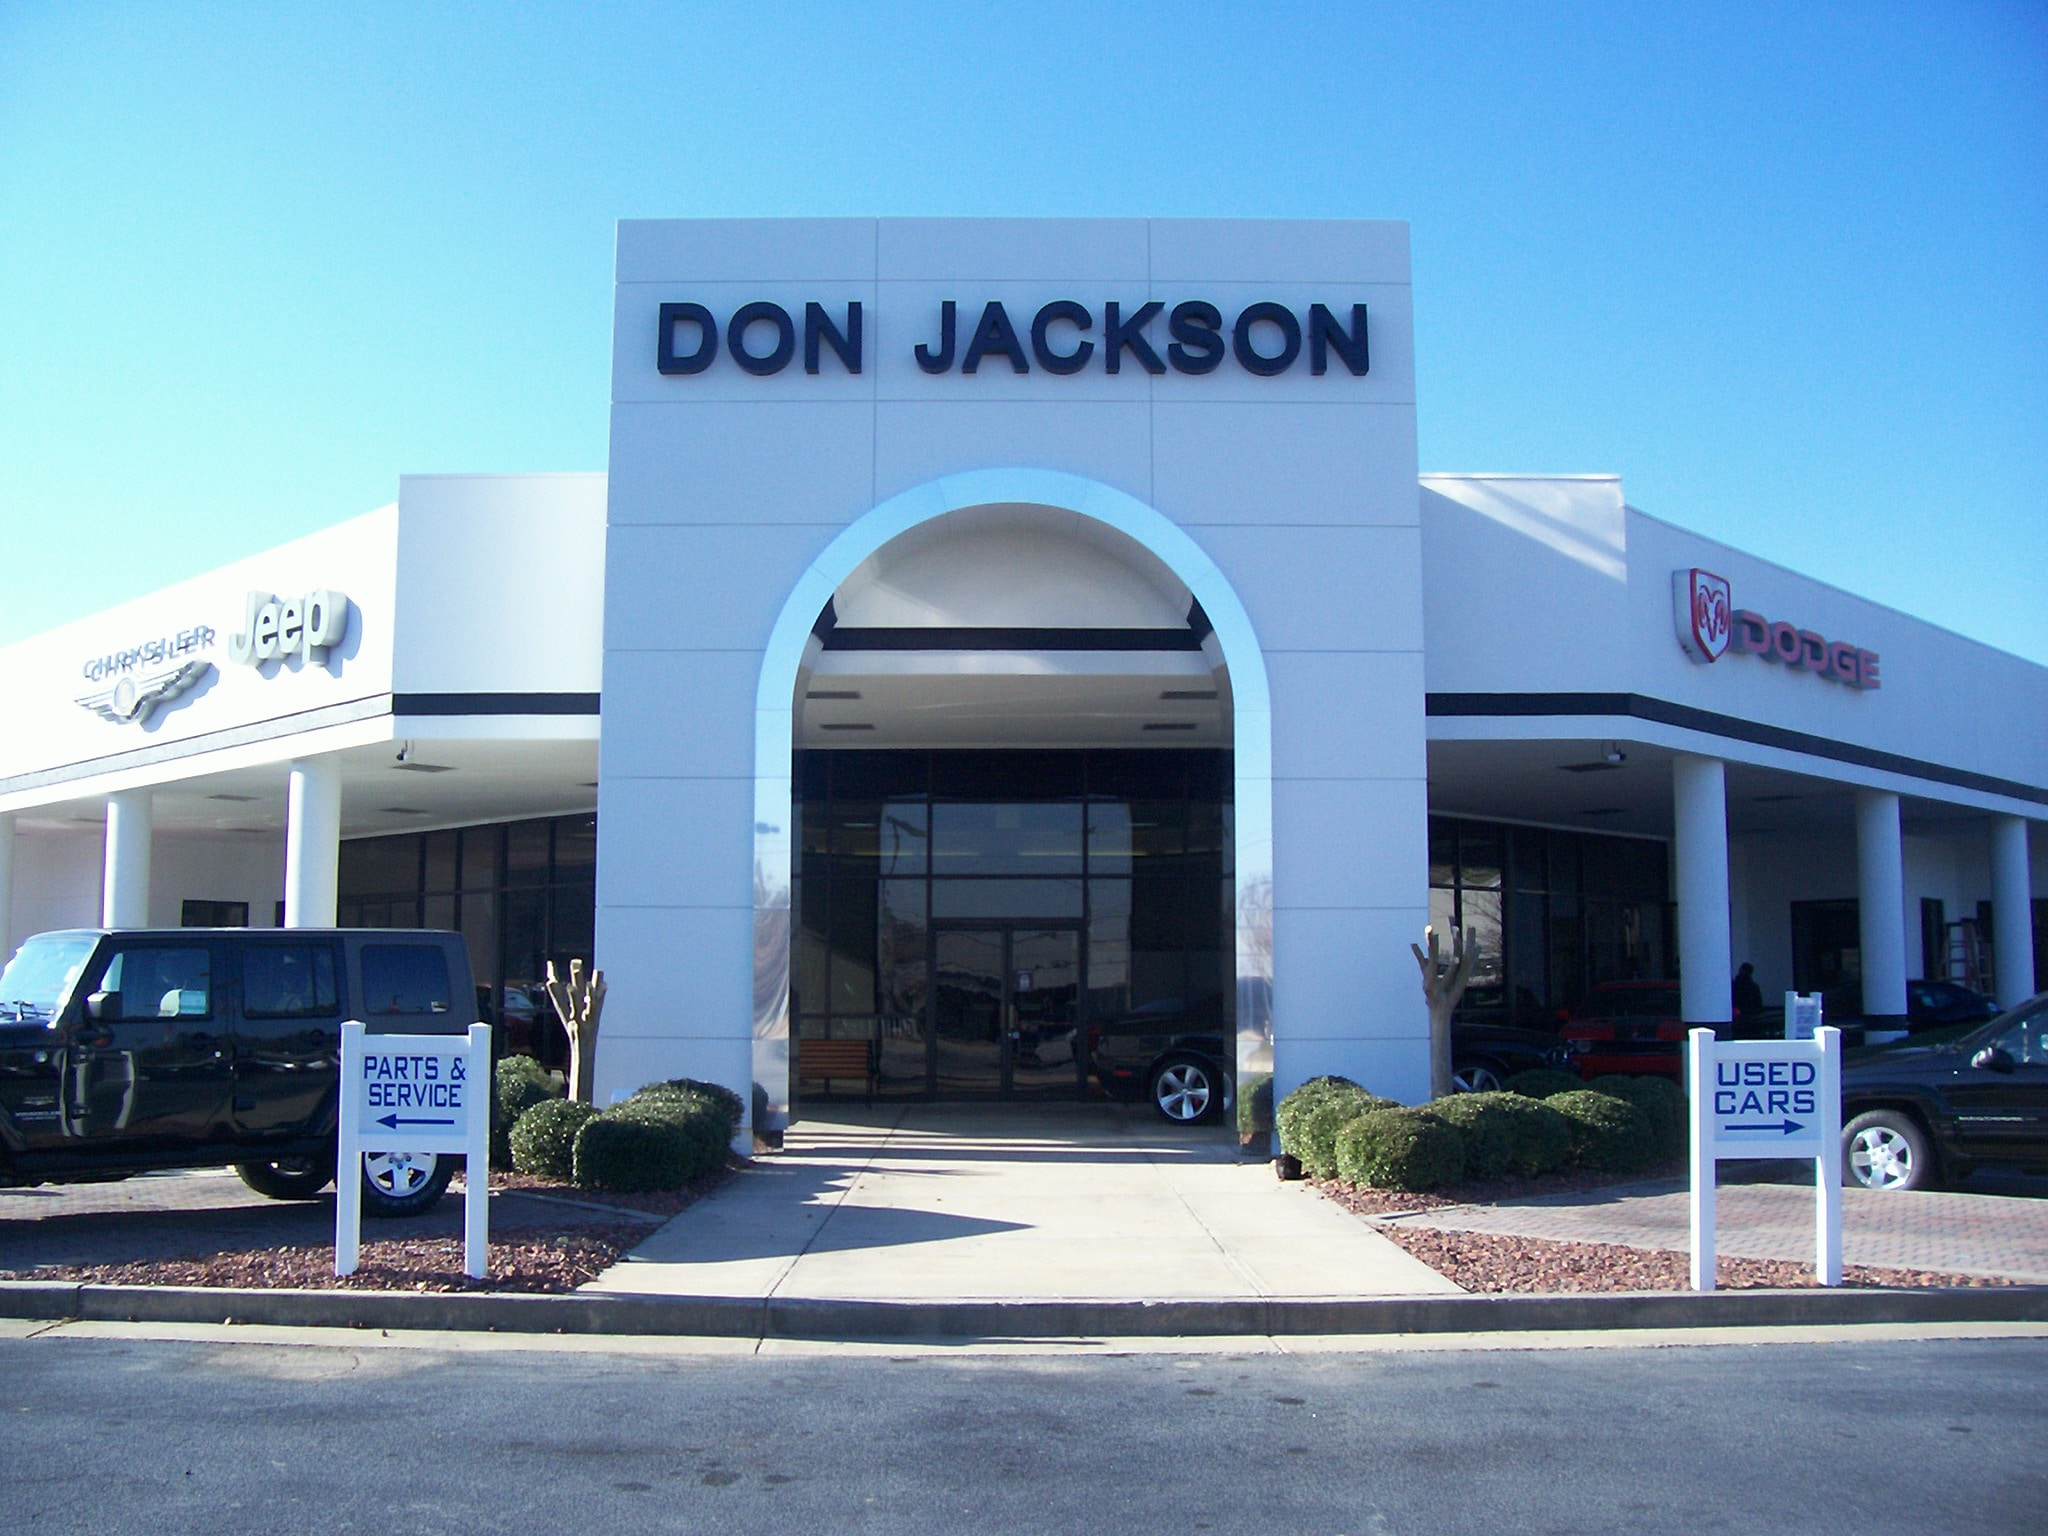 don jackson chrysler jeep dodge an atlanta area new used dodge. Cars Review. Best American Auto & Cars Review